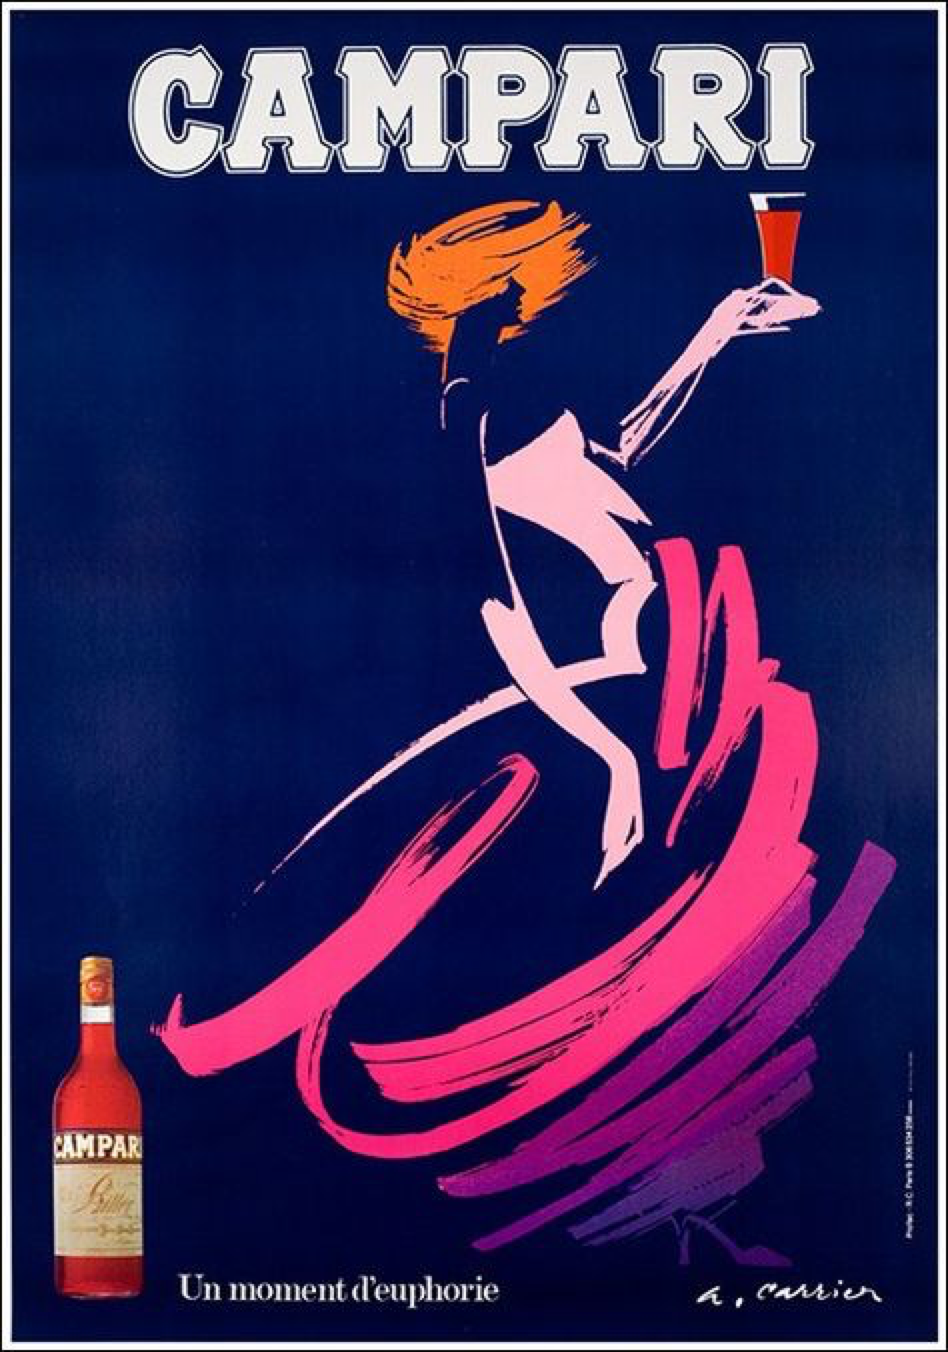 It's Not Too Late To Join The Campari's Party